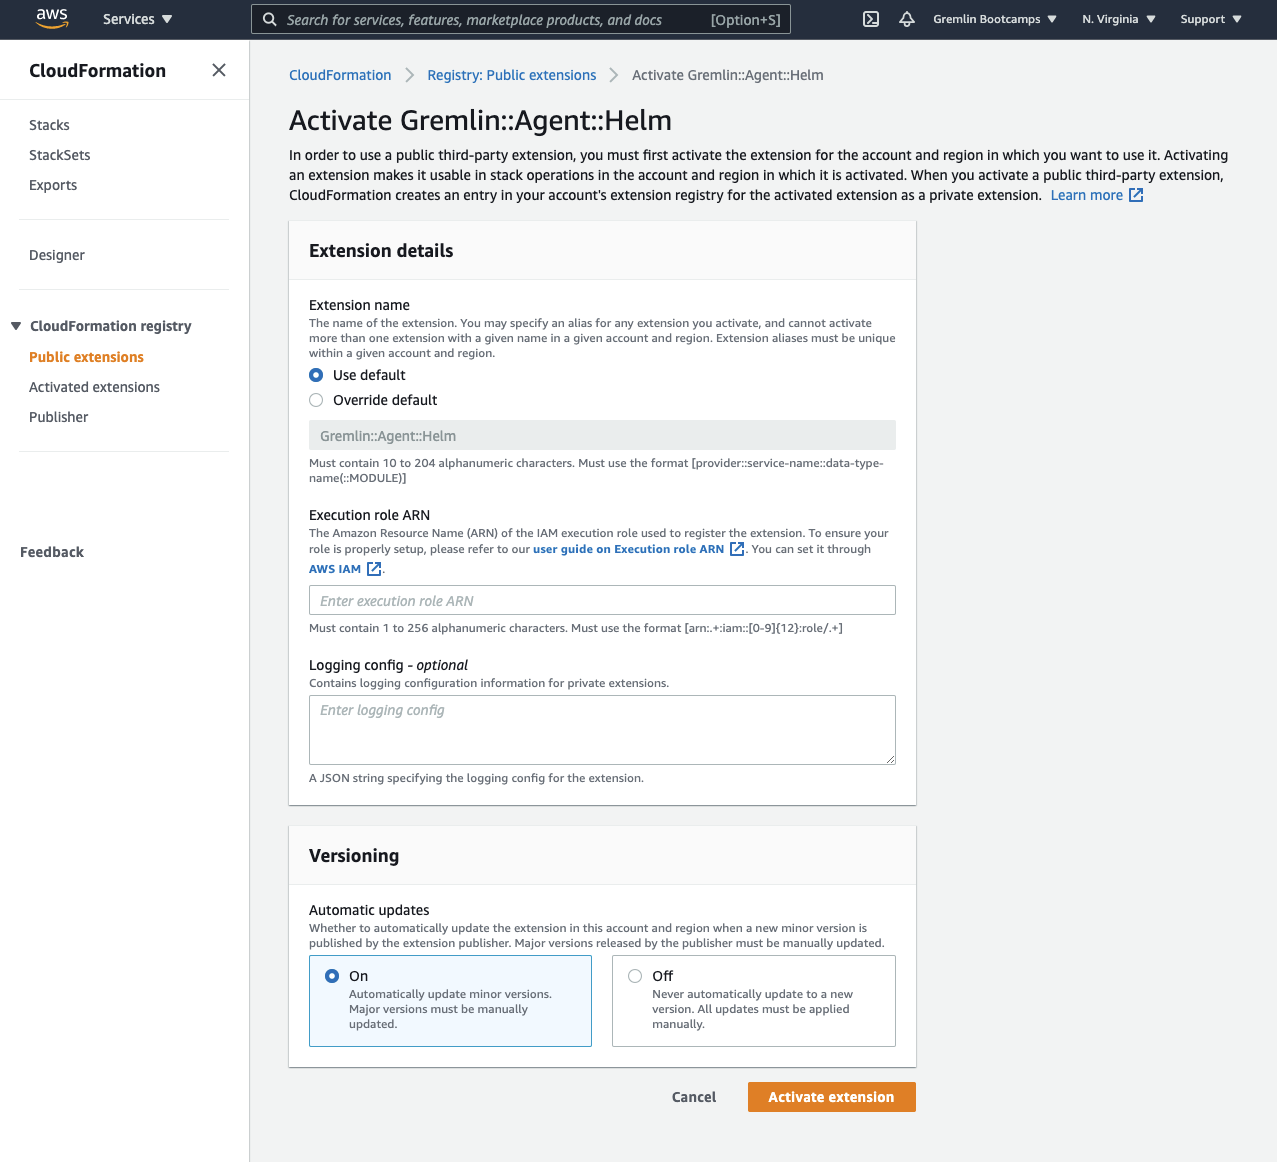 Activating the Gremlin extension in CloudFormation